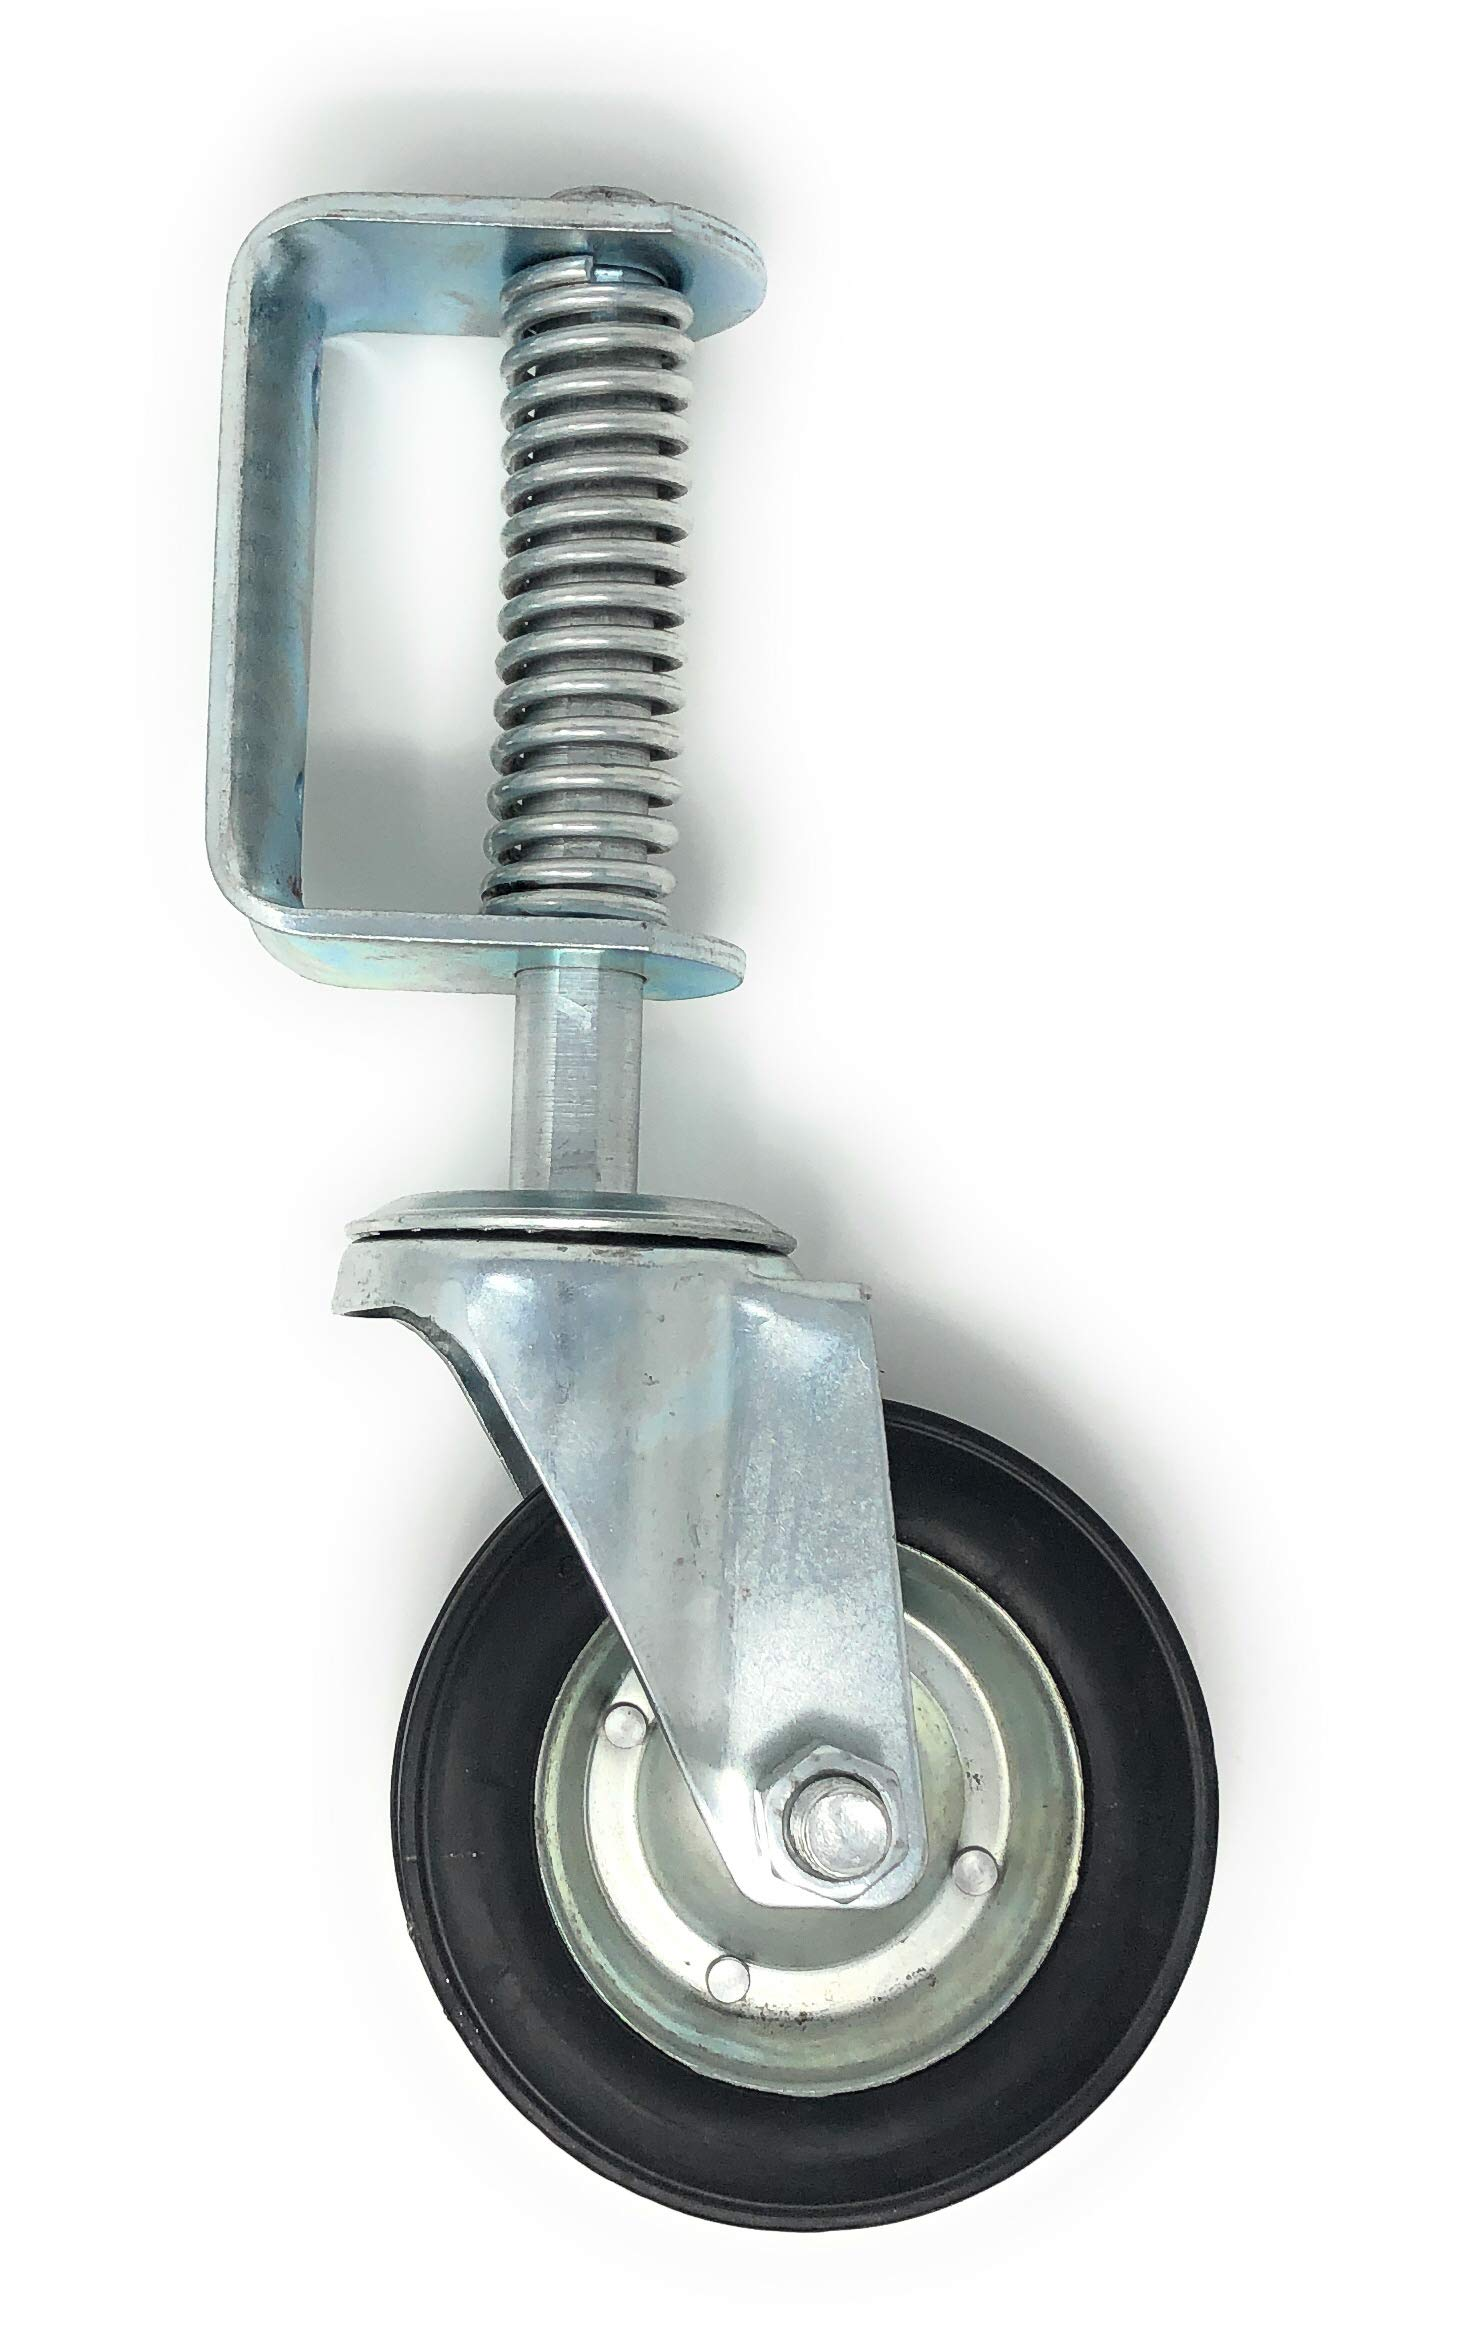 New 6 Inch Spring Loaded Swivel Wheel Heavy Duty 14'' Overall Height by FenceSmart4U (Image #1)